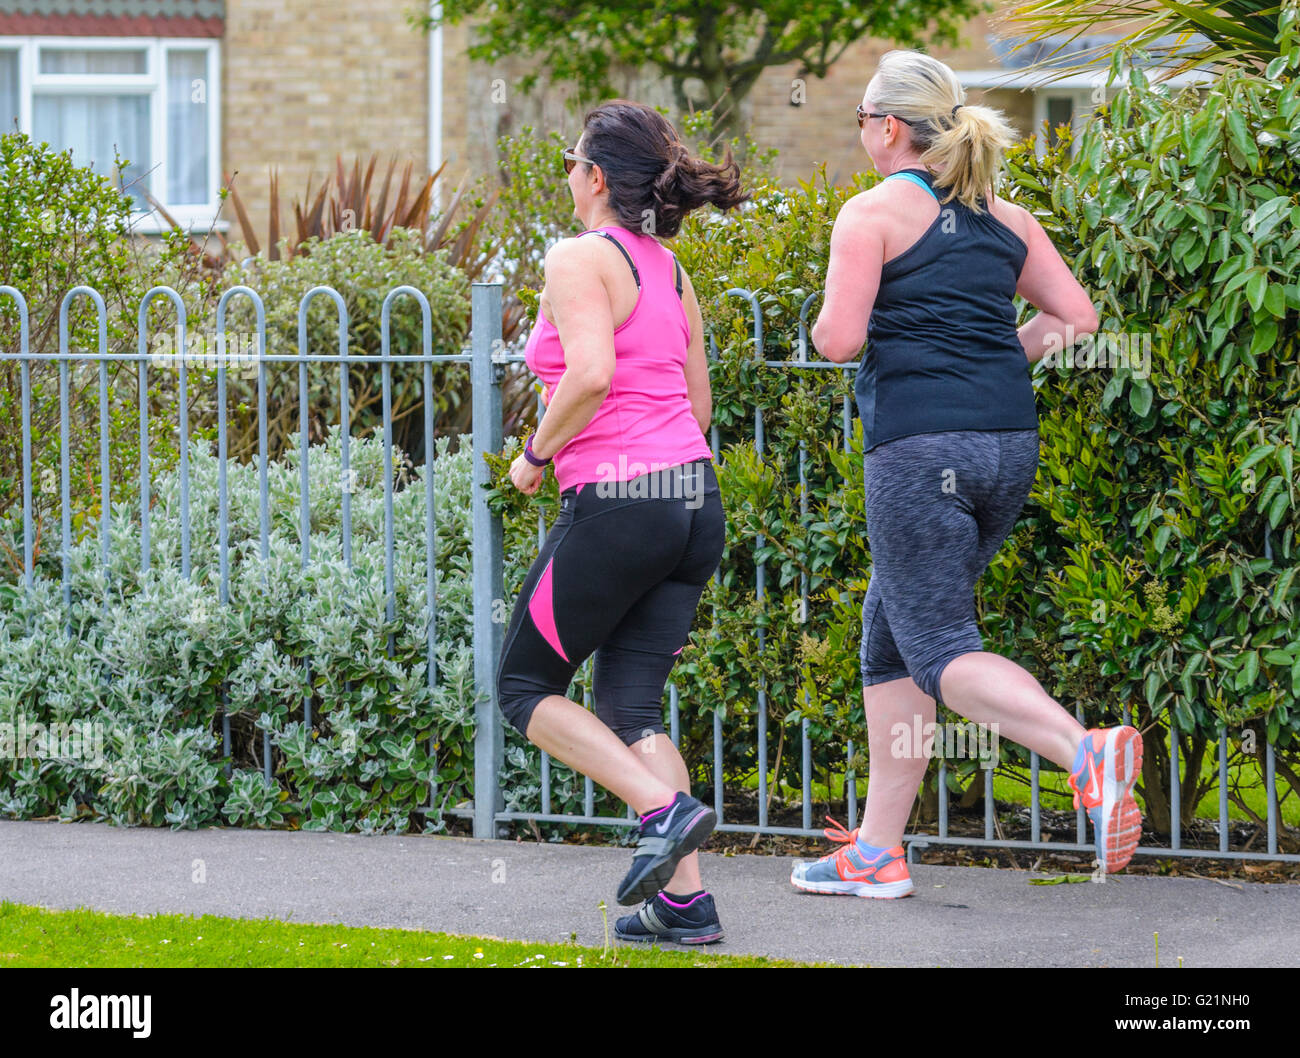 Pair of female joggers on a residential street in the UK. - Stock Image